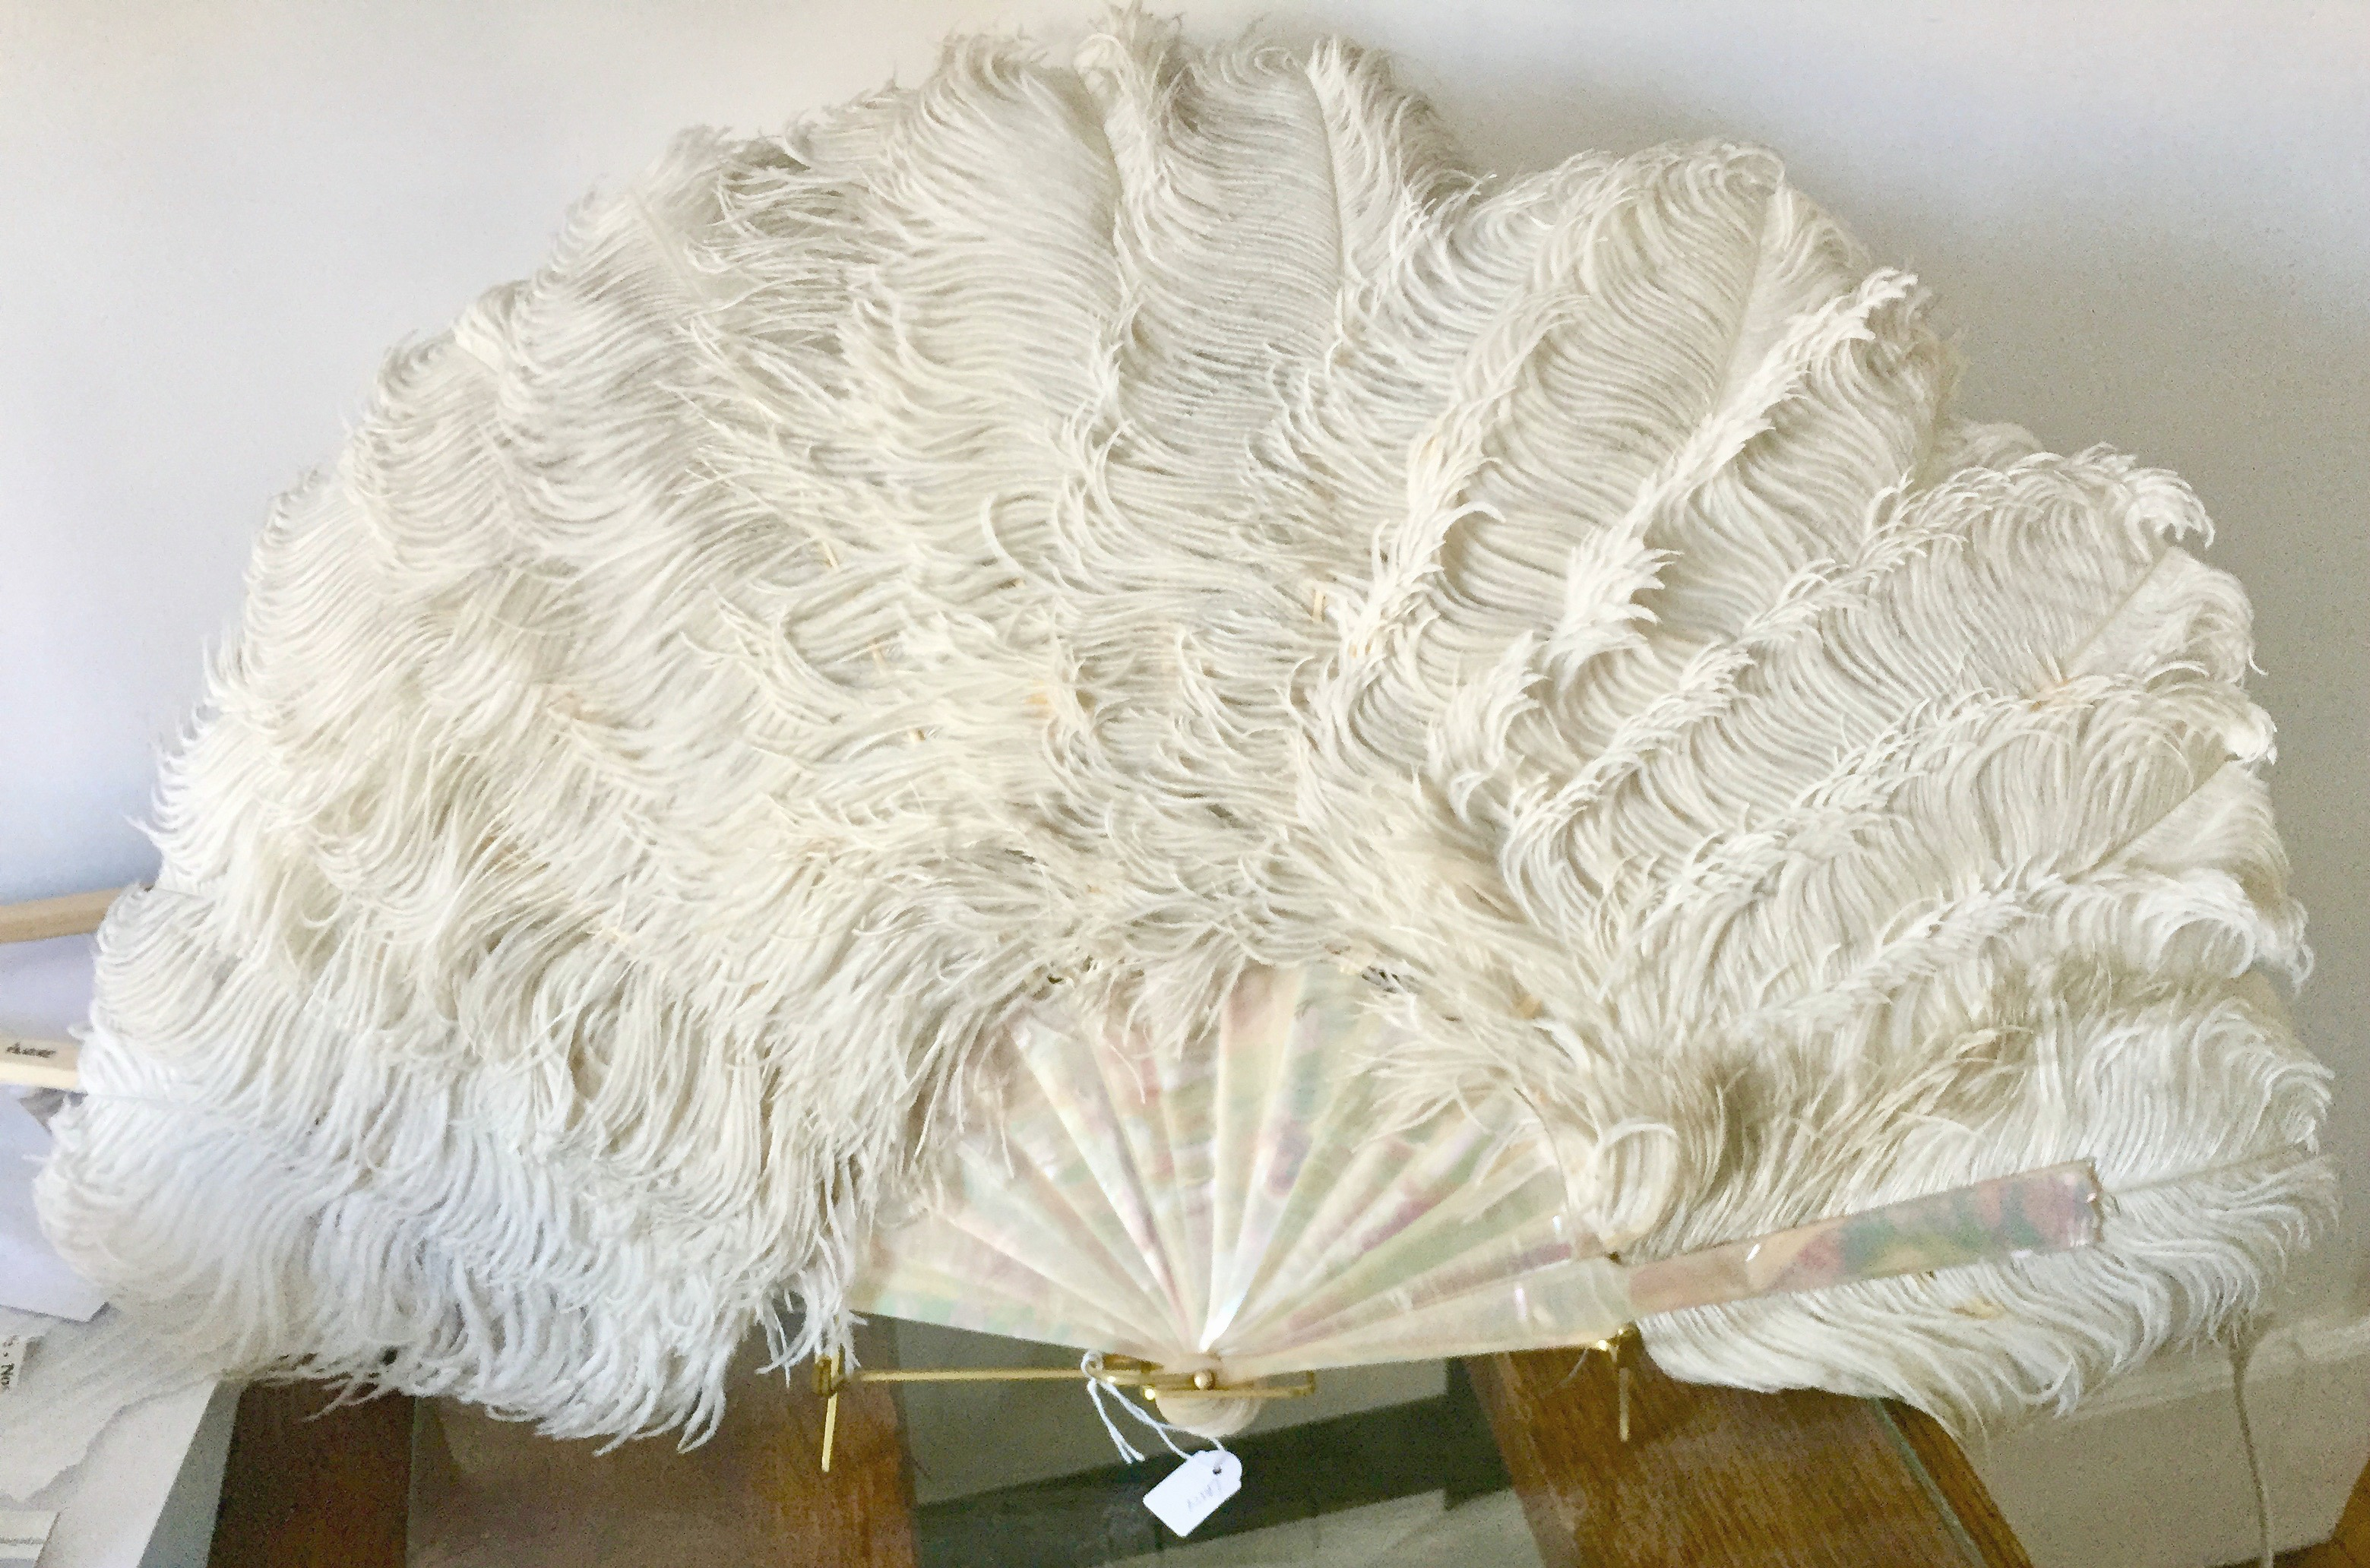 Feather Fan after conservation